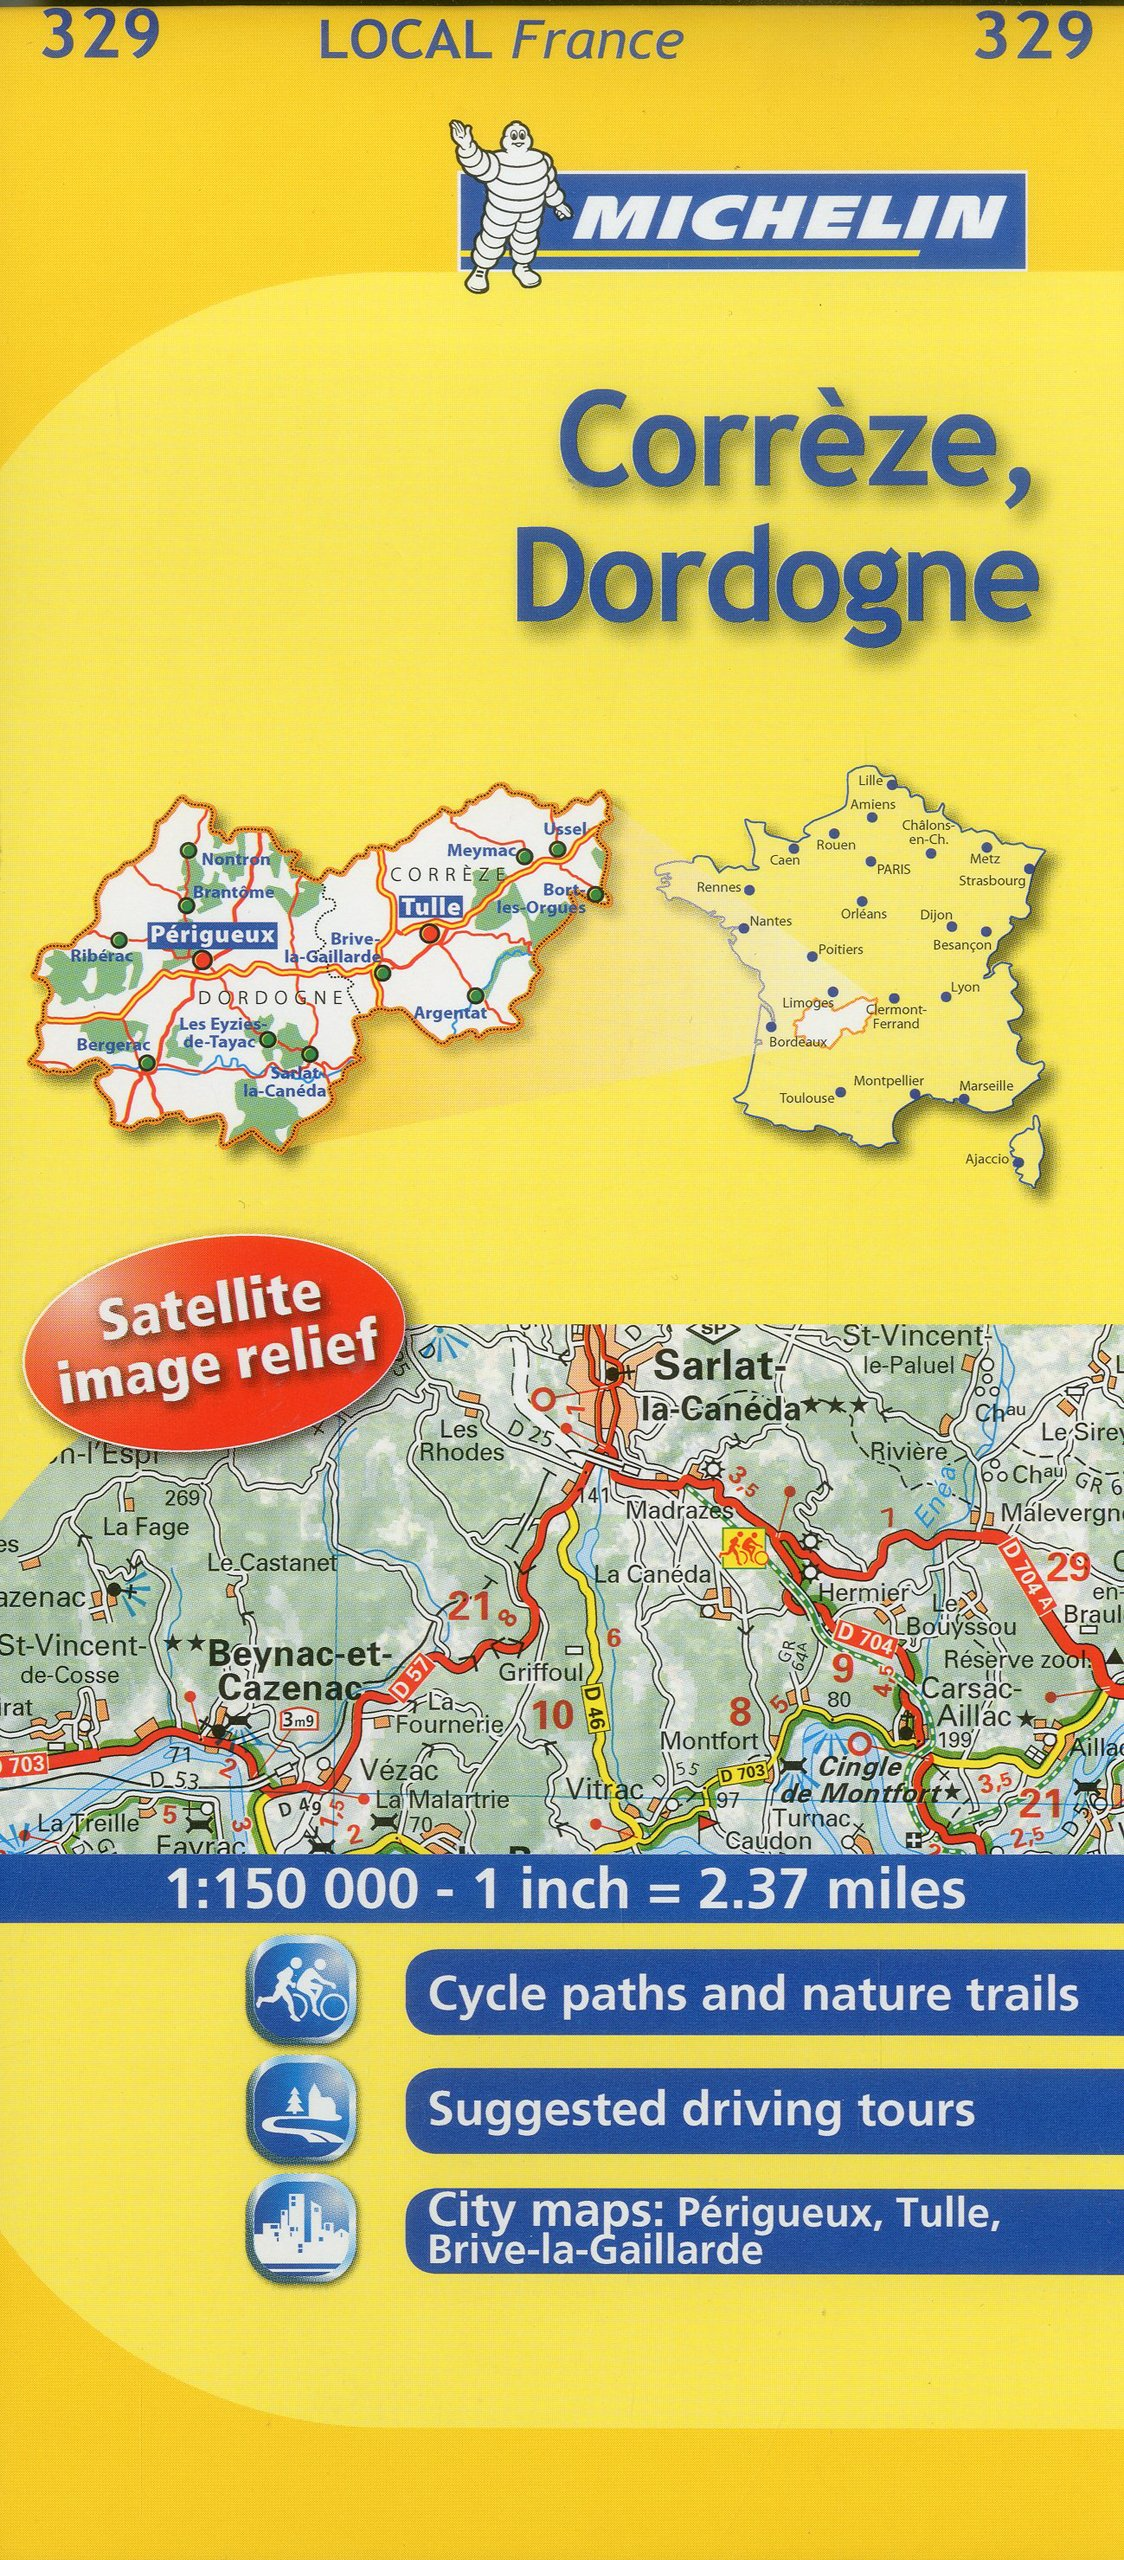 Map Of France Detailed.Michelin Map France Correze Dordogne 329 Michelin Local Maps